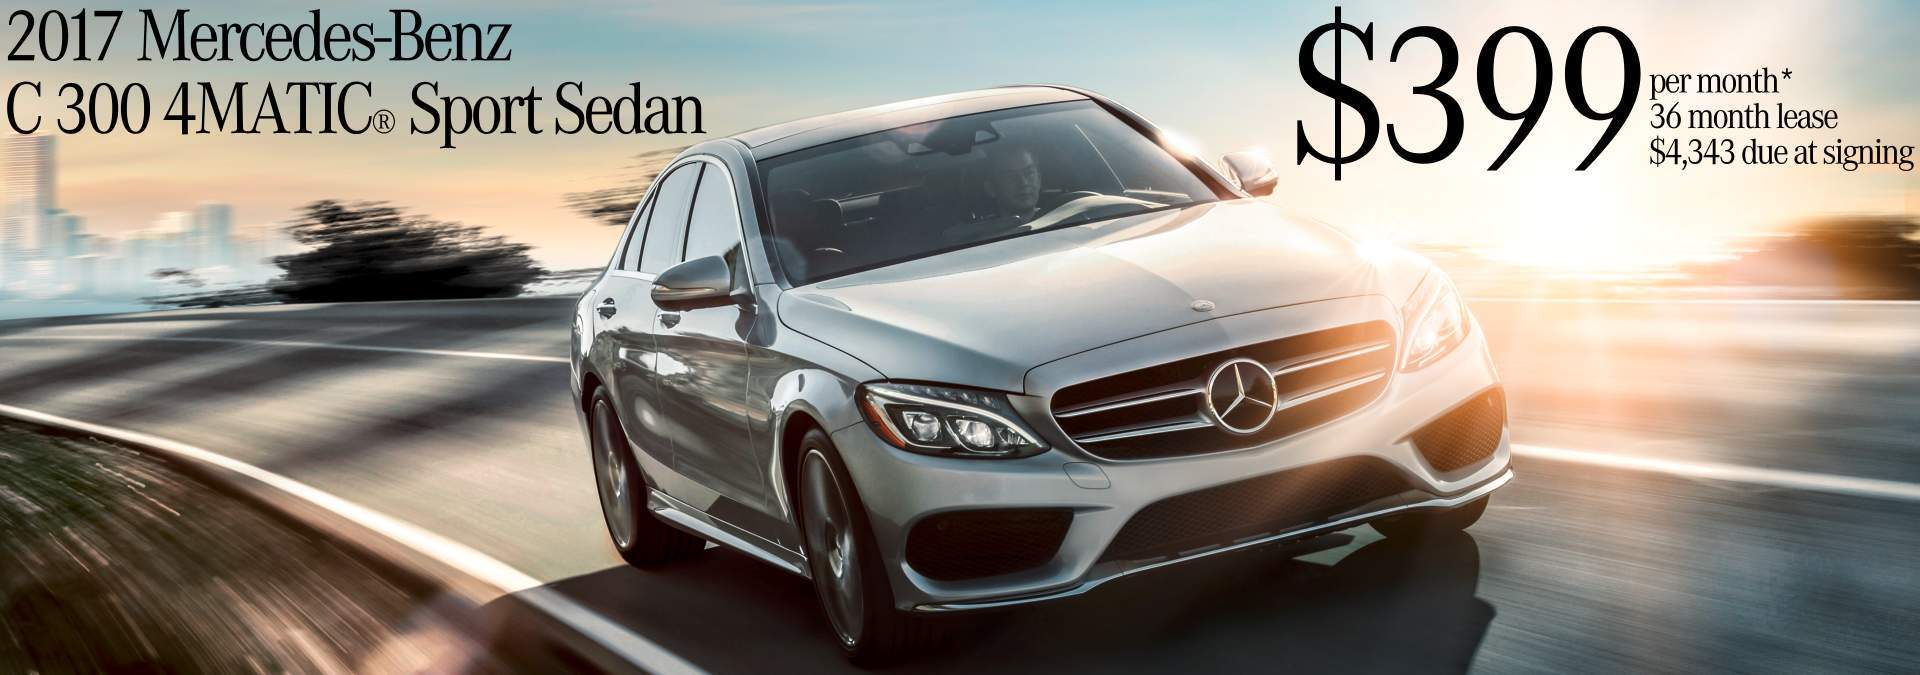 October 2017 C-Class Lease Offer